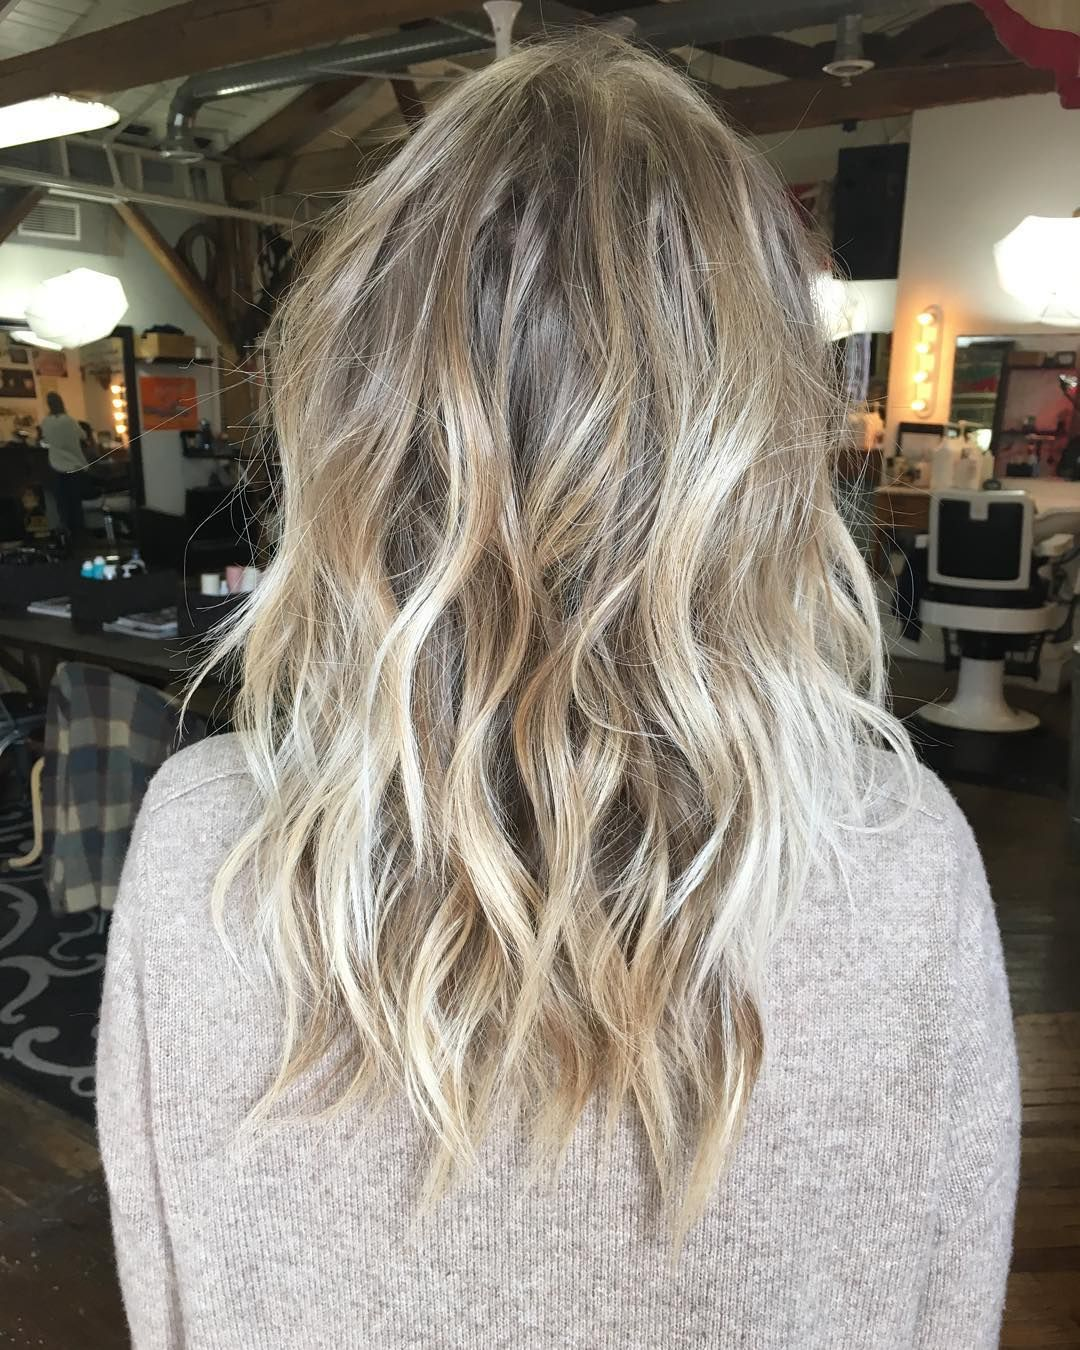 Blonde ombre highlights #jukehair #leahhofffhair""